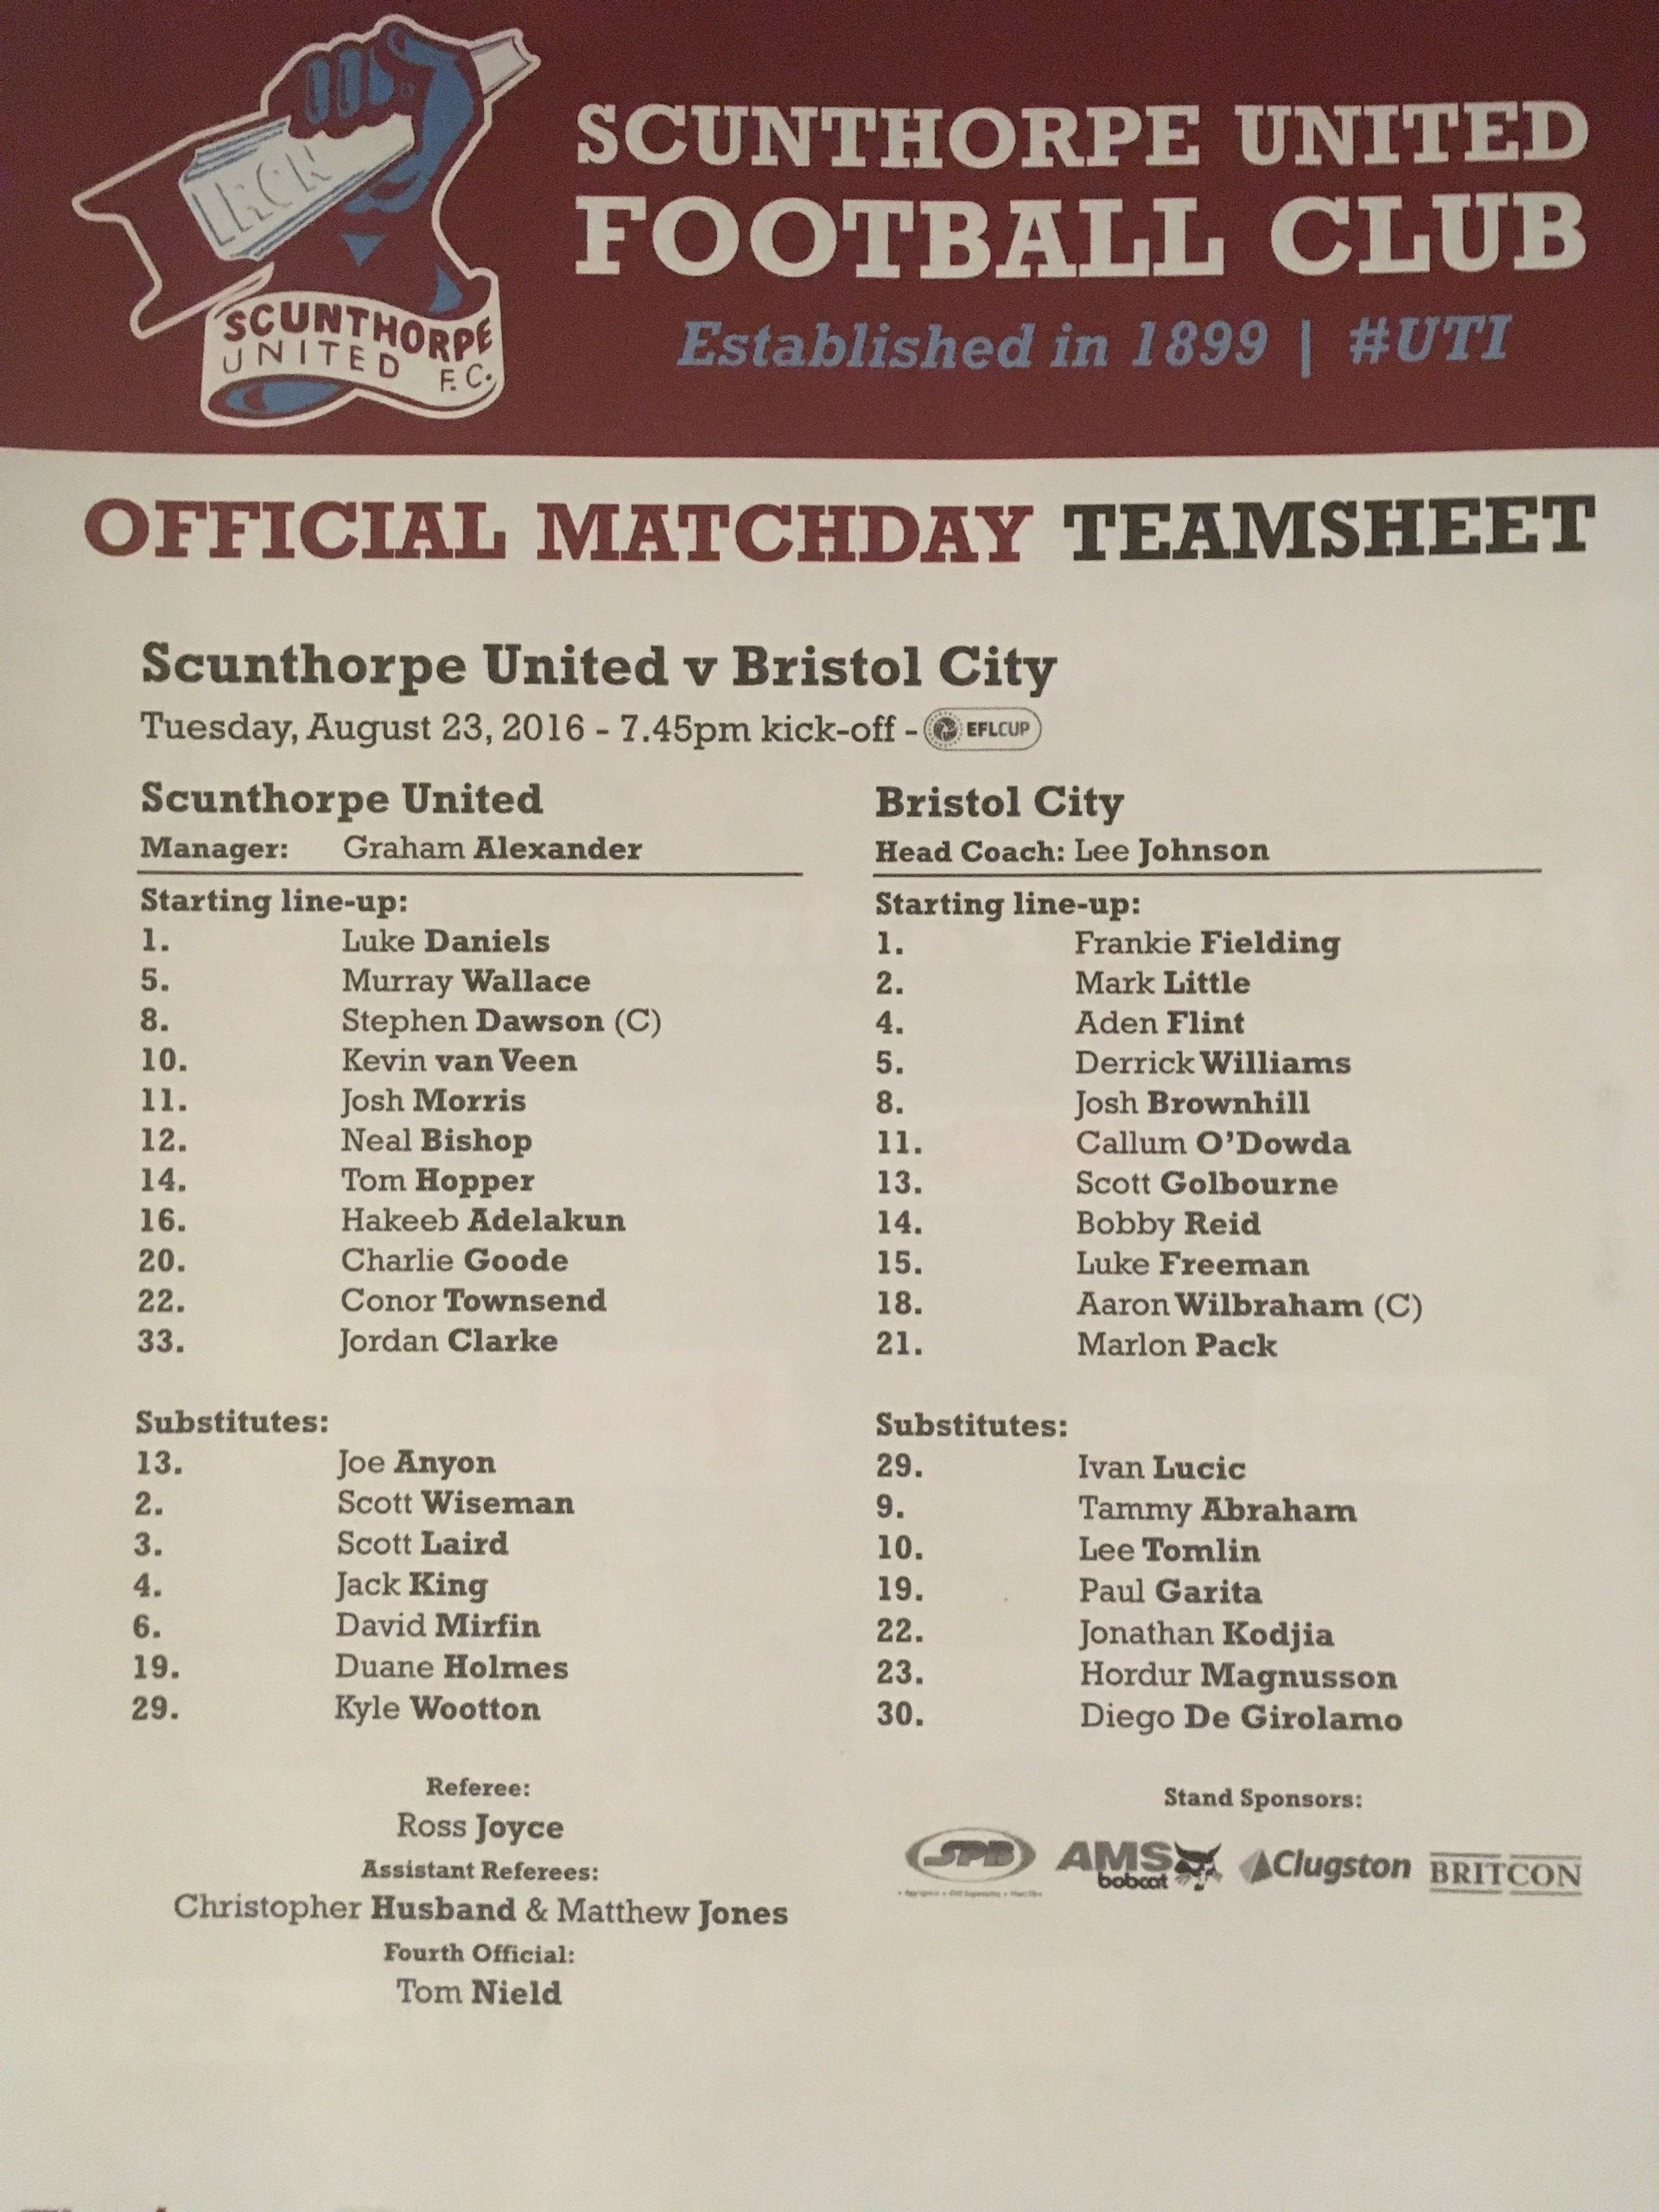 Scunthorpe United v Bristol City 23-08-2016 Team Sheet